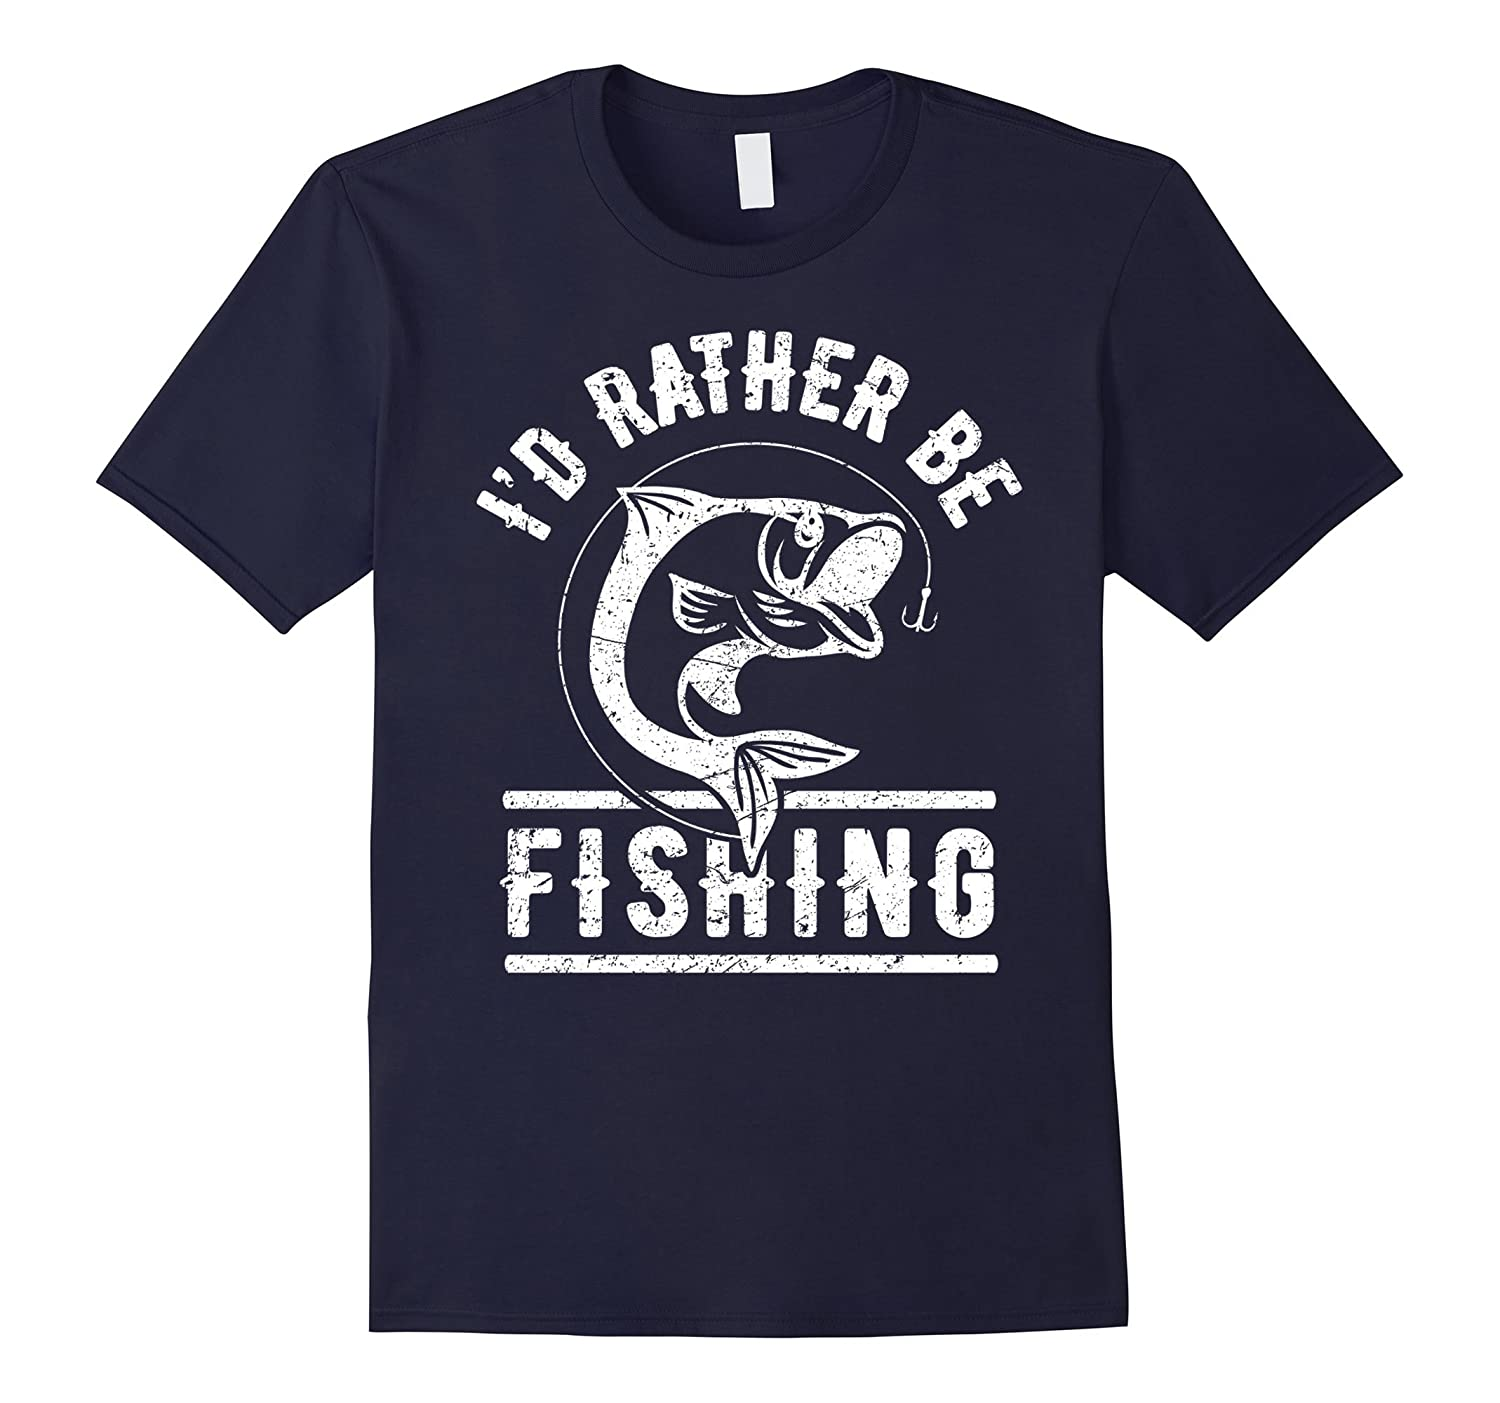 ID Rather Be Fishing Shirt Funny Fisherman Gift T-Shirt-TD